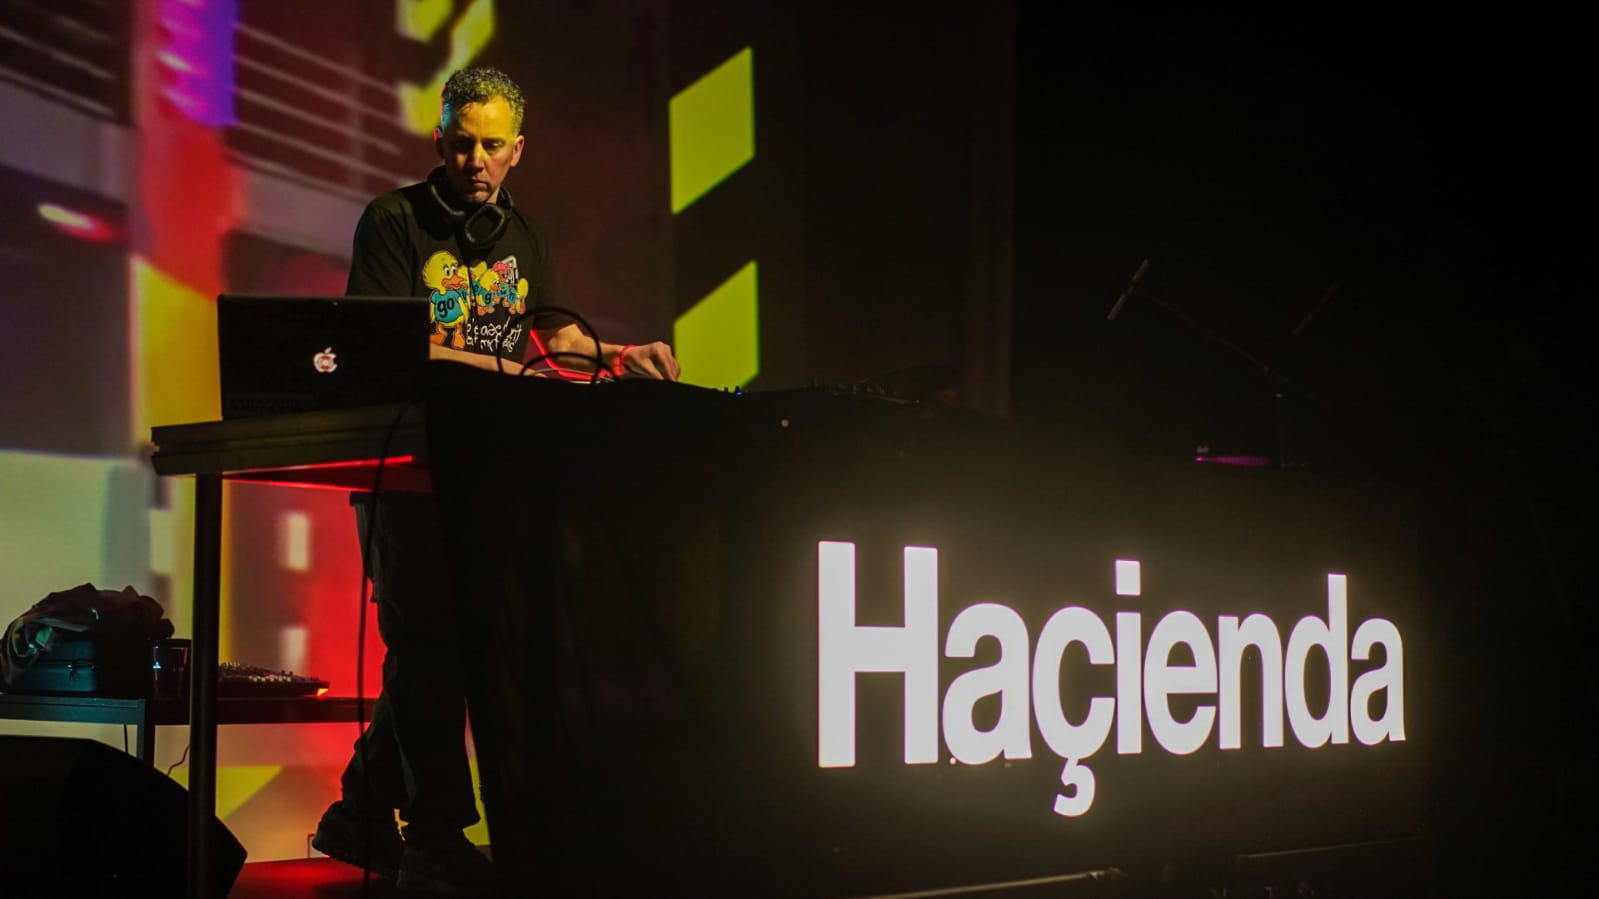 Four million tune in for Manchester's NYE Hacienda House Party on United We Stream, The Manc